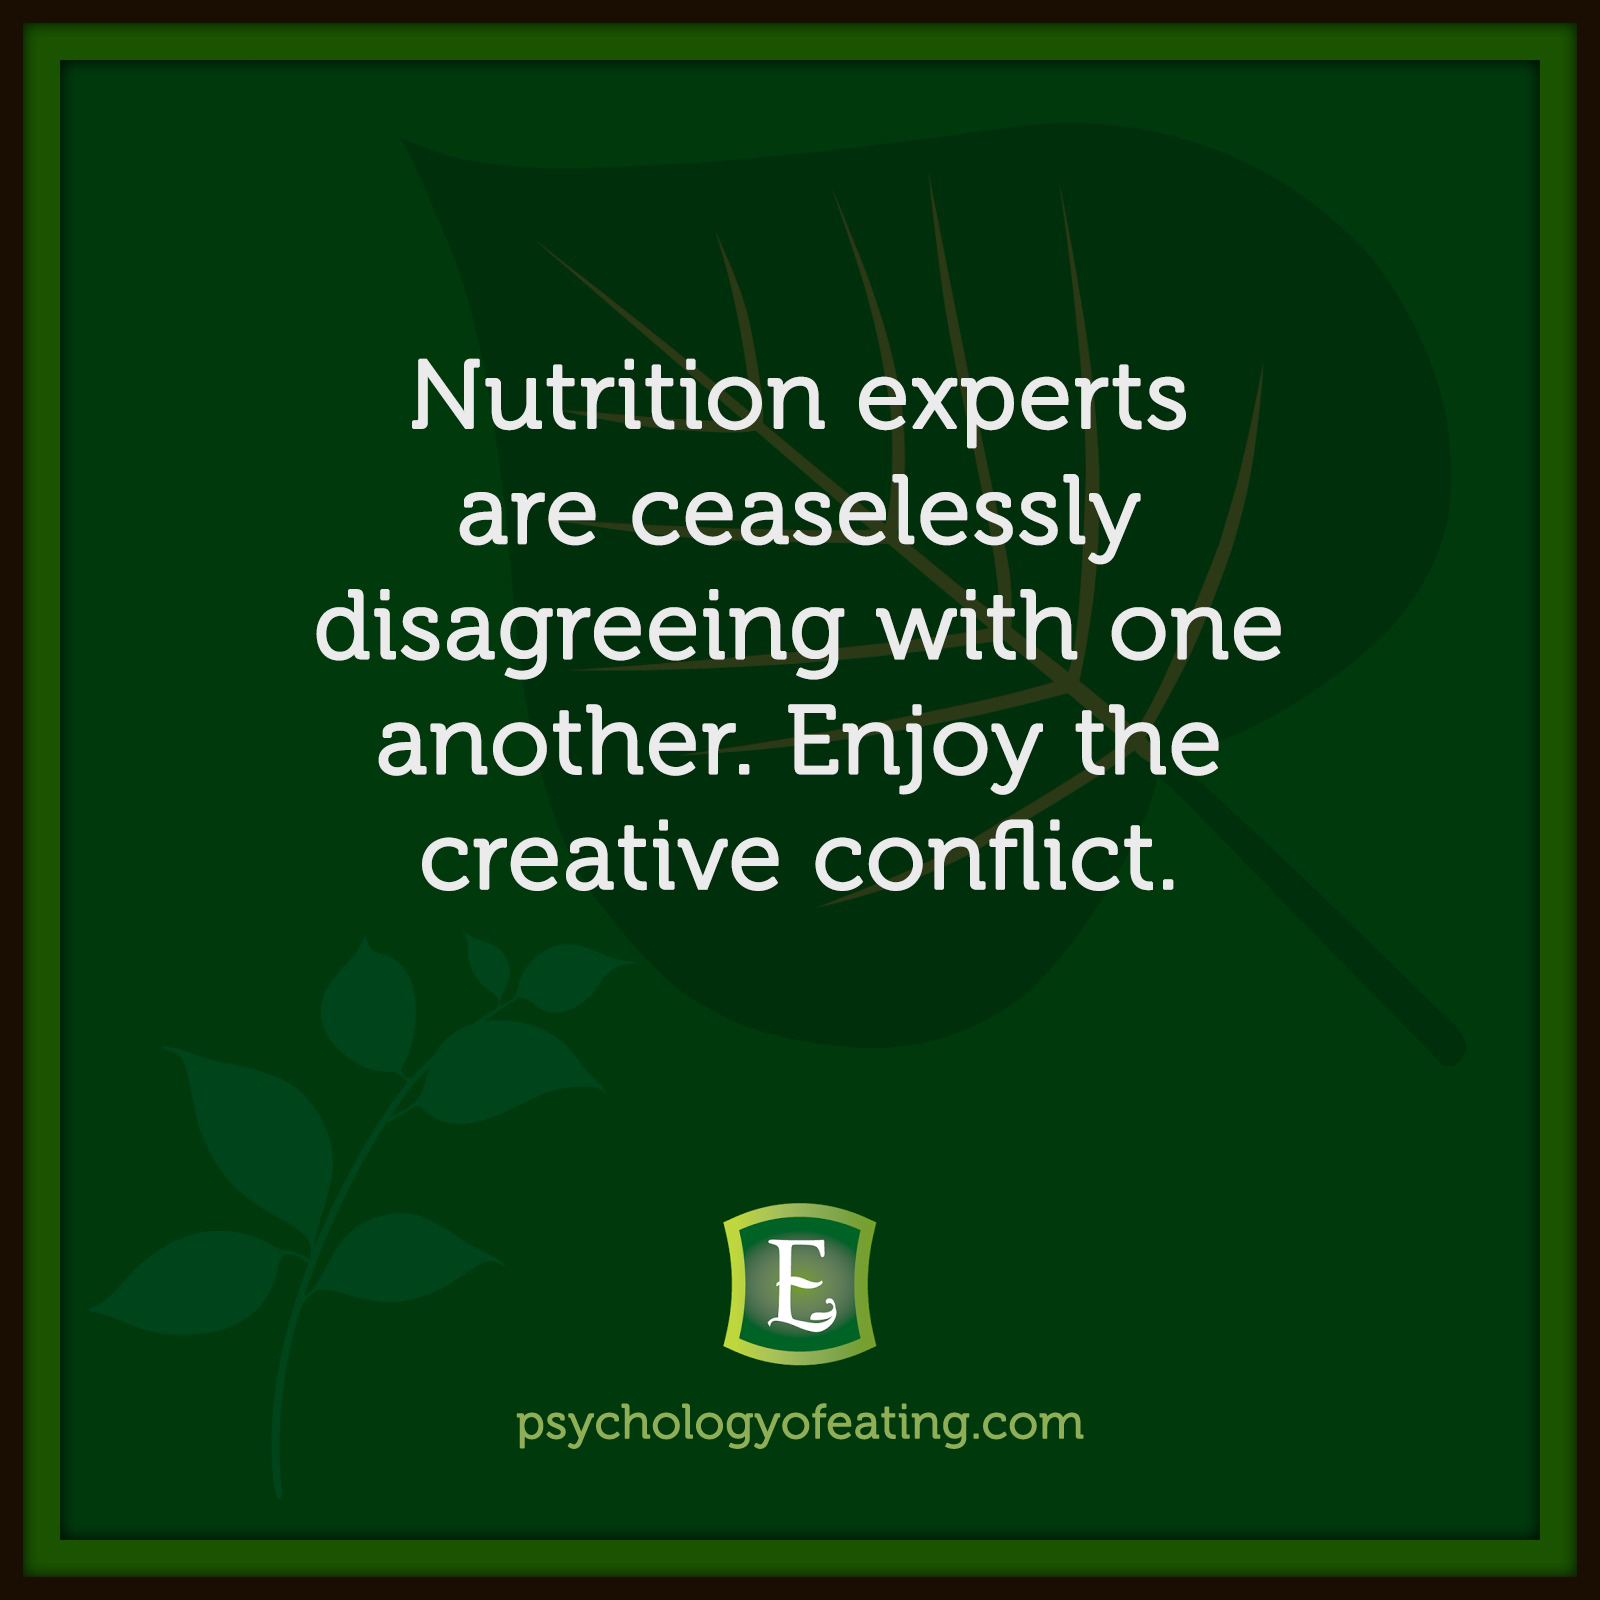 Nutrition experts are ceaselessly disagreeing with one another. Enjoy the creative conflict. #health #nutrition #eatingpsychology #IPE